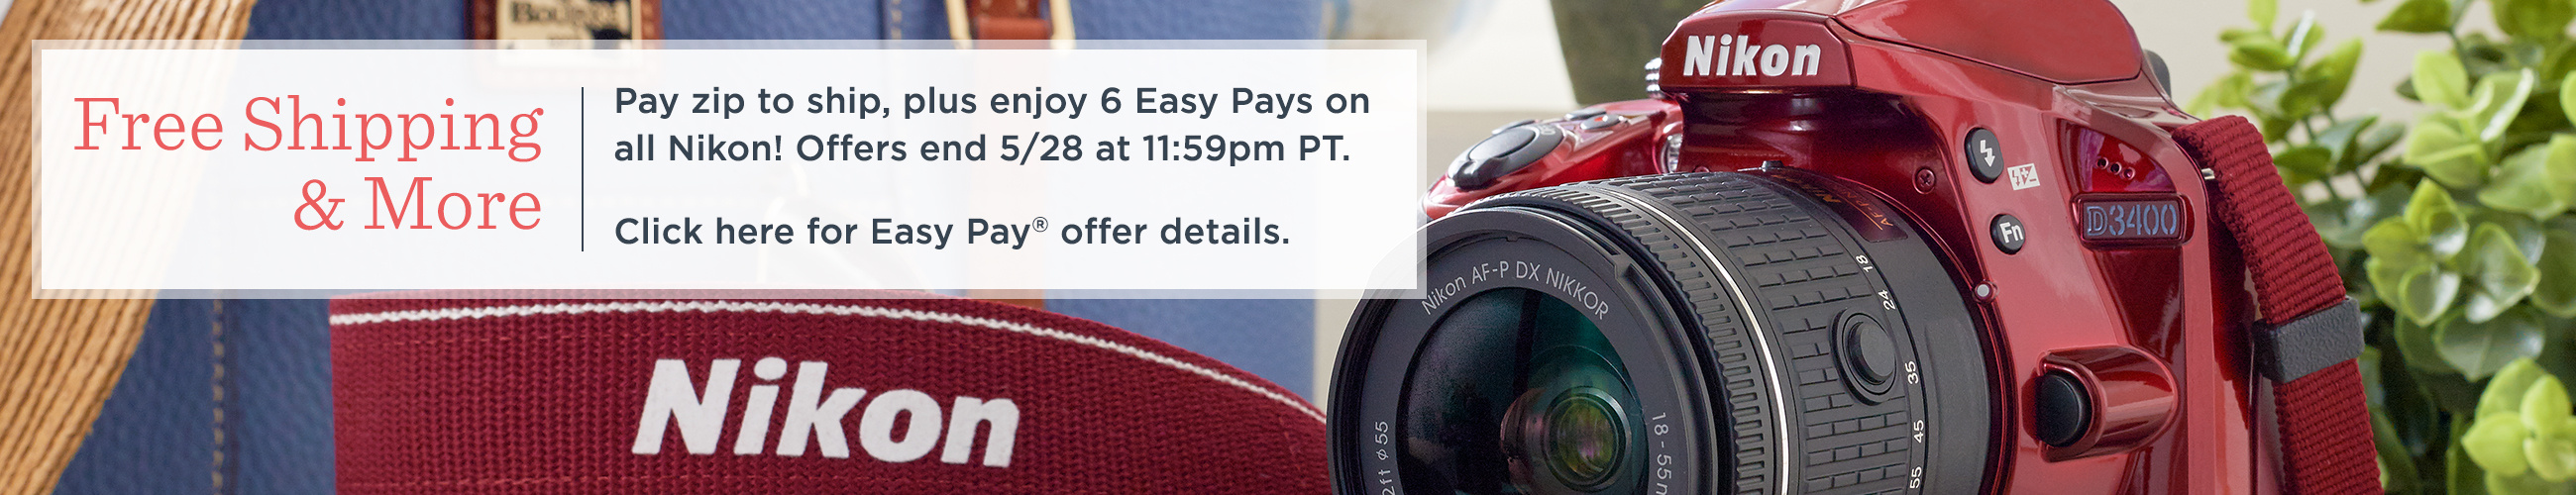 Free Shipping & More — Pay zip to ship, plus enjoy 6 Easy Pays on all Nikon! Offers end 5/28 at 11:59pm PT.  Click here for Easy Pay® offer details.